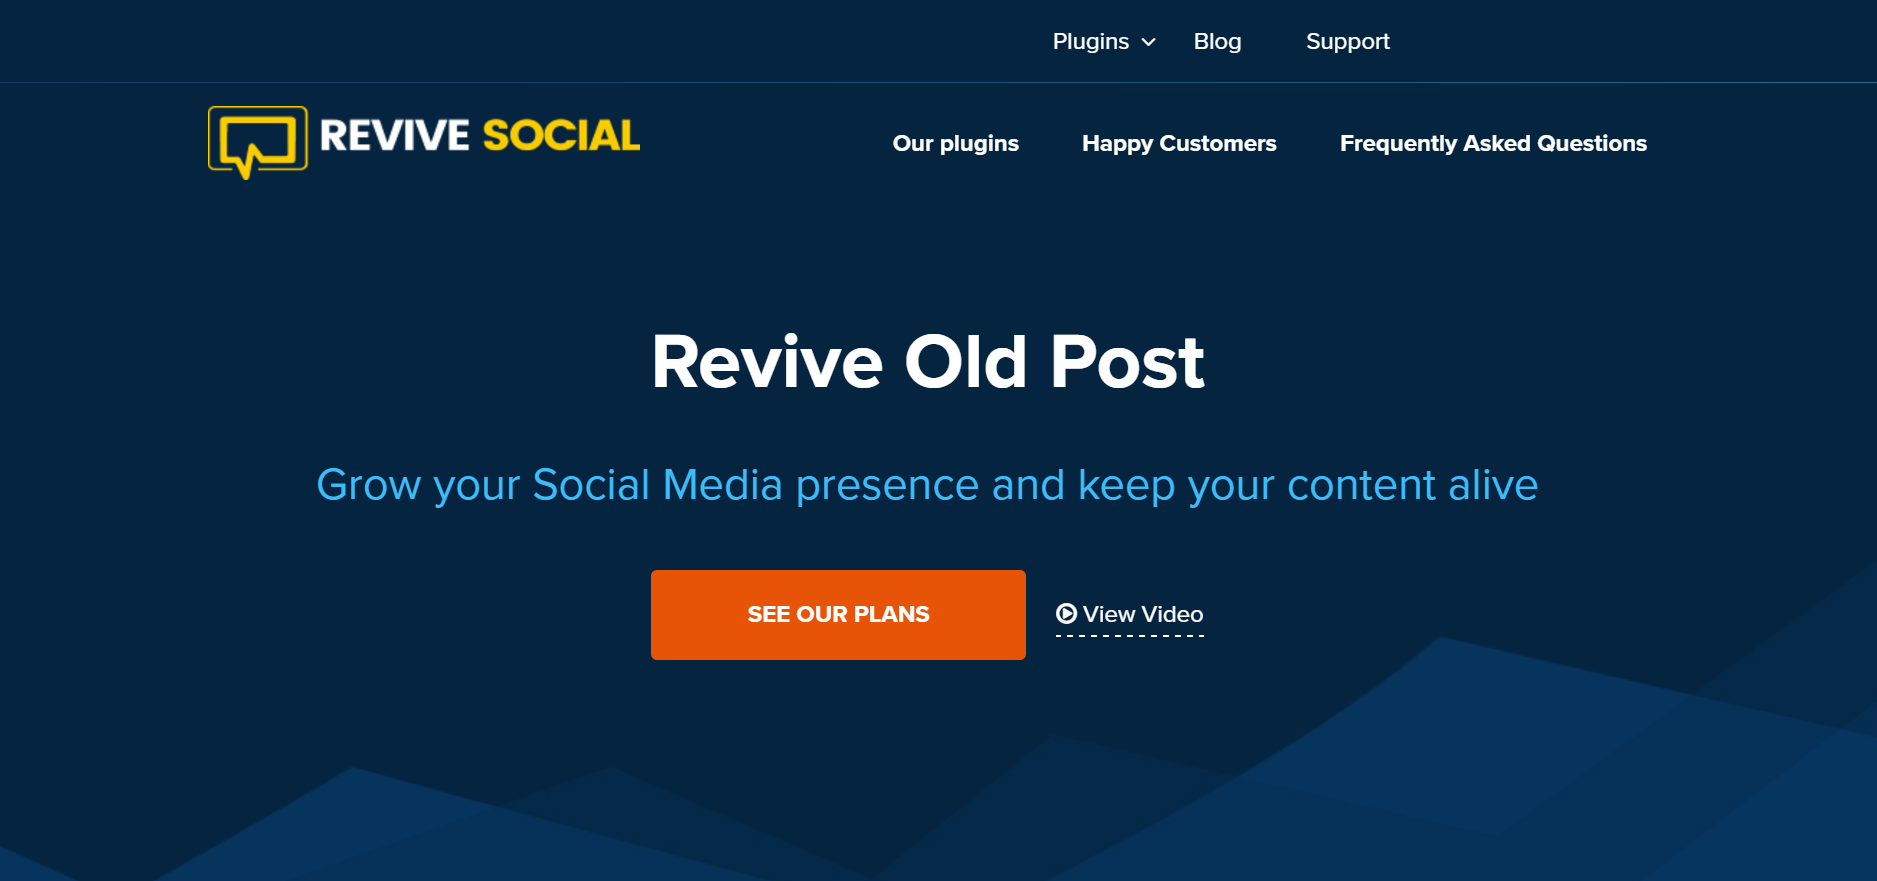 The Revive Old Post plugin.